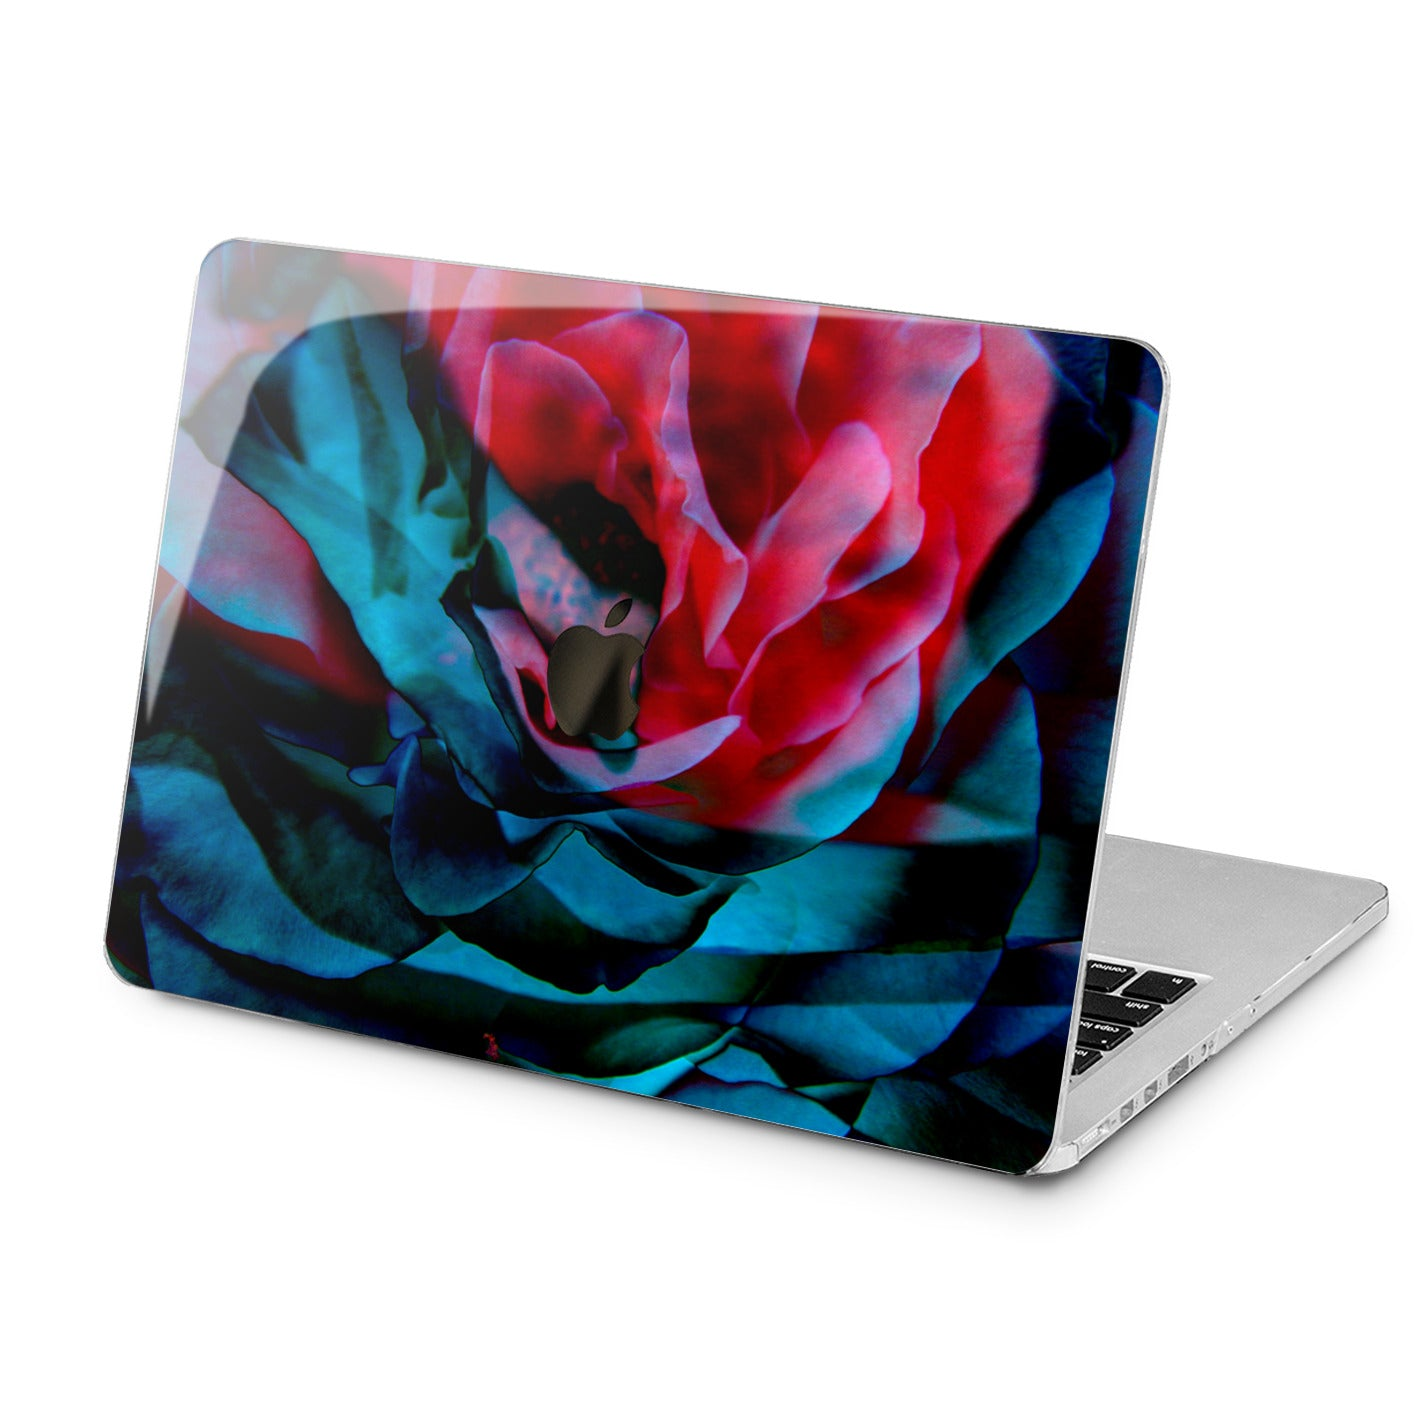 Lex Altern Lex Altern Dark Rose Case for your Laptop Apple Macbook.